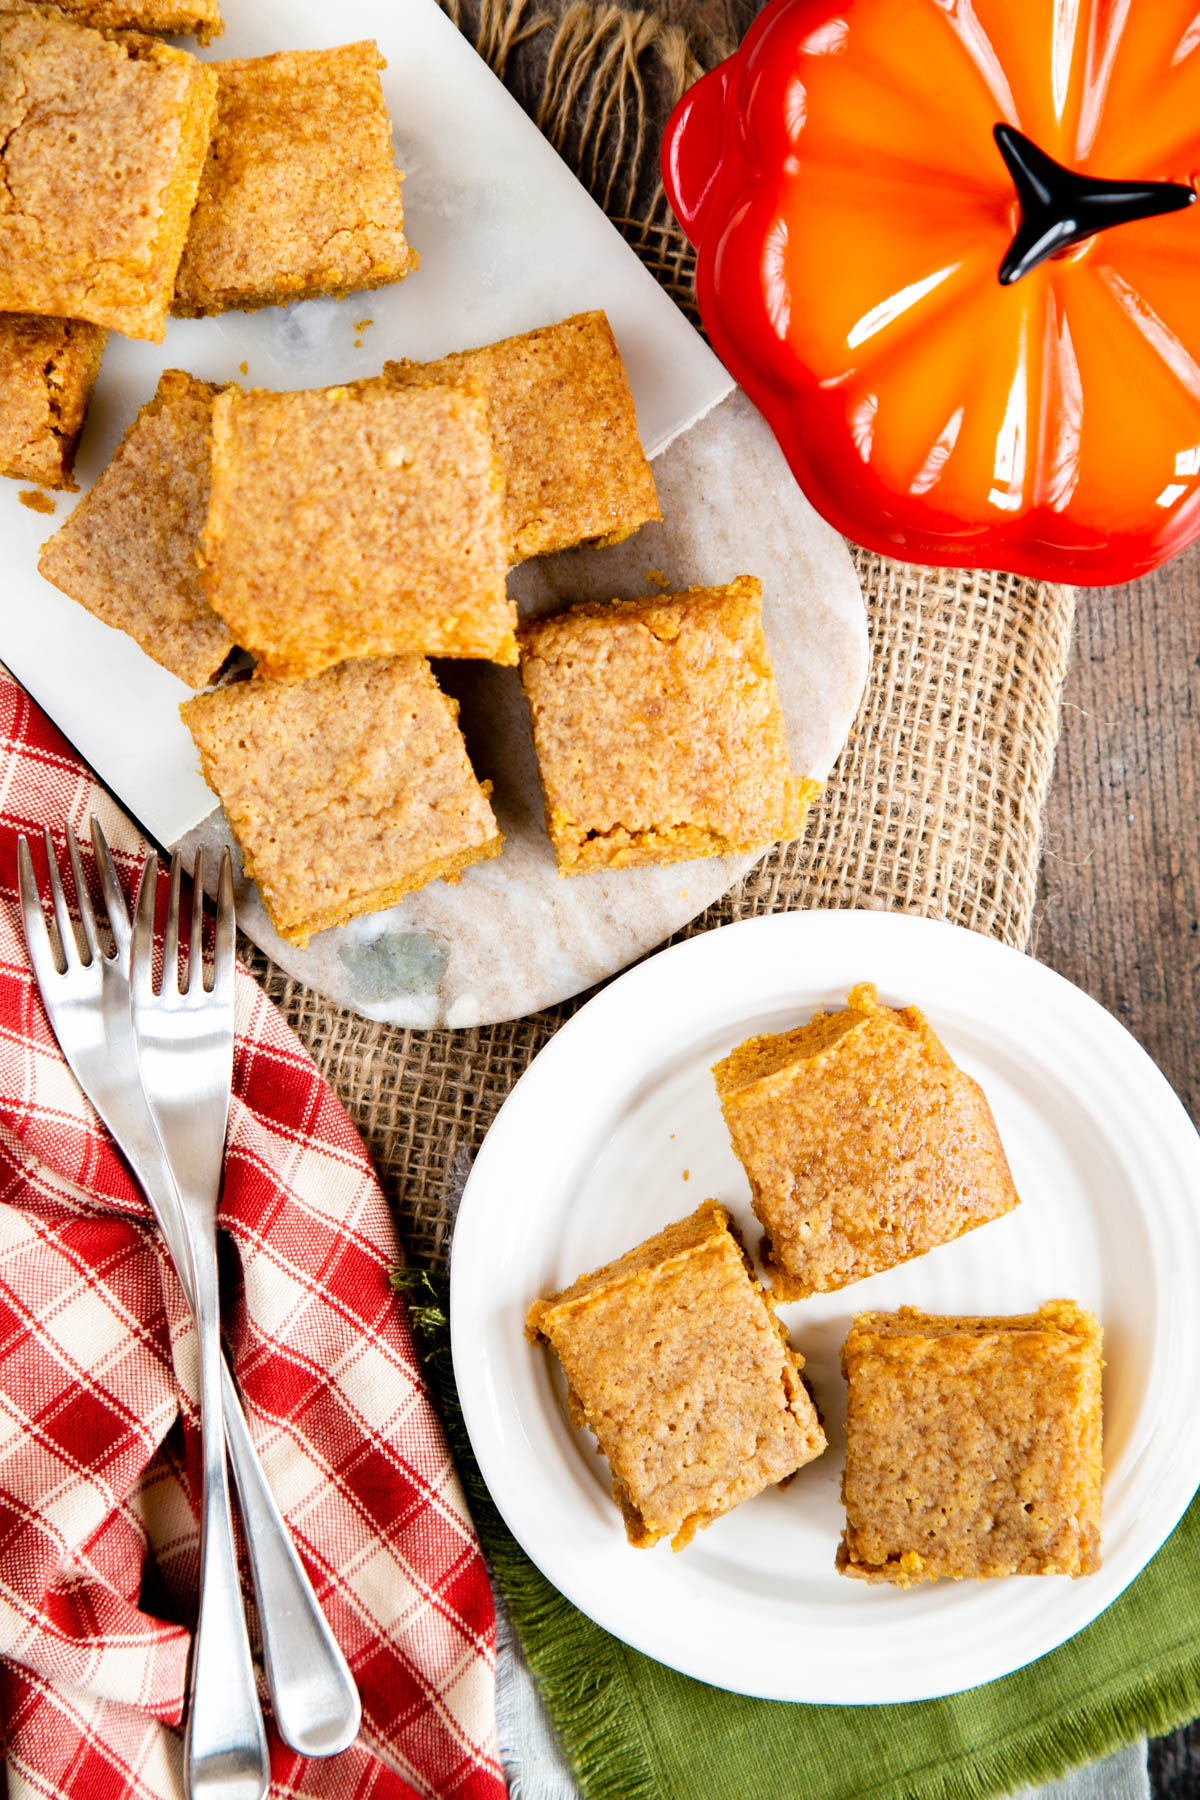 Delicious pumpkin spice blondies, arranged on both a marble board and a side plate. A pumpkin shaped mini casserole dish sits next to the board.